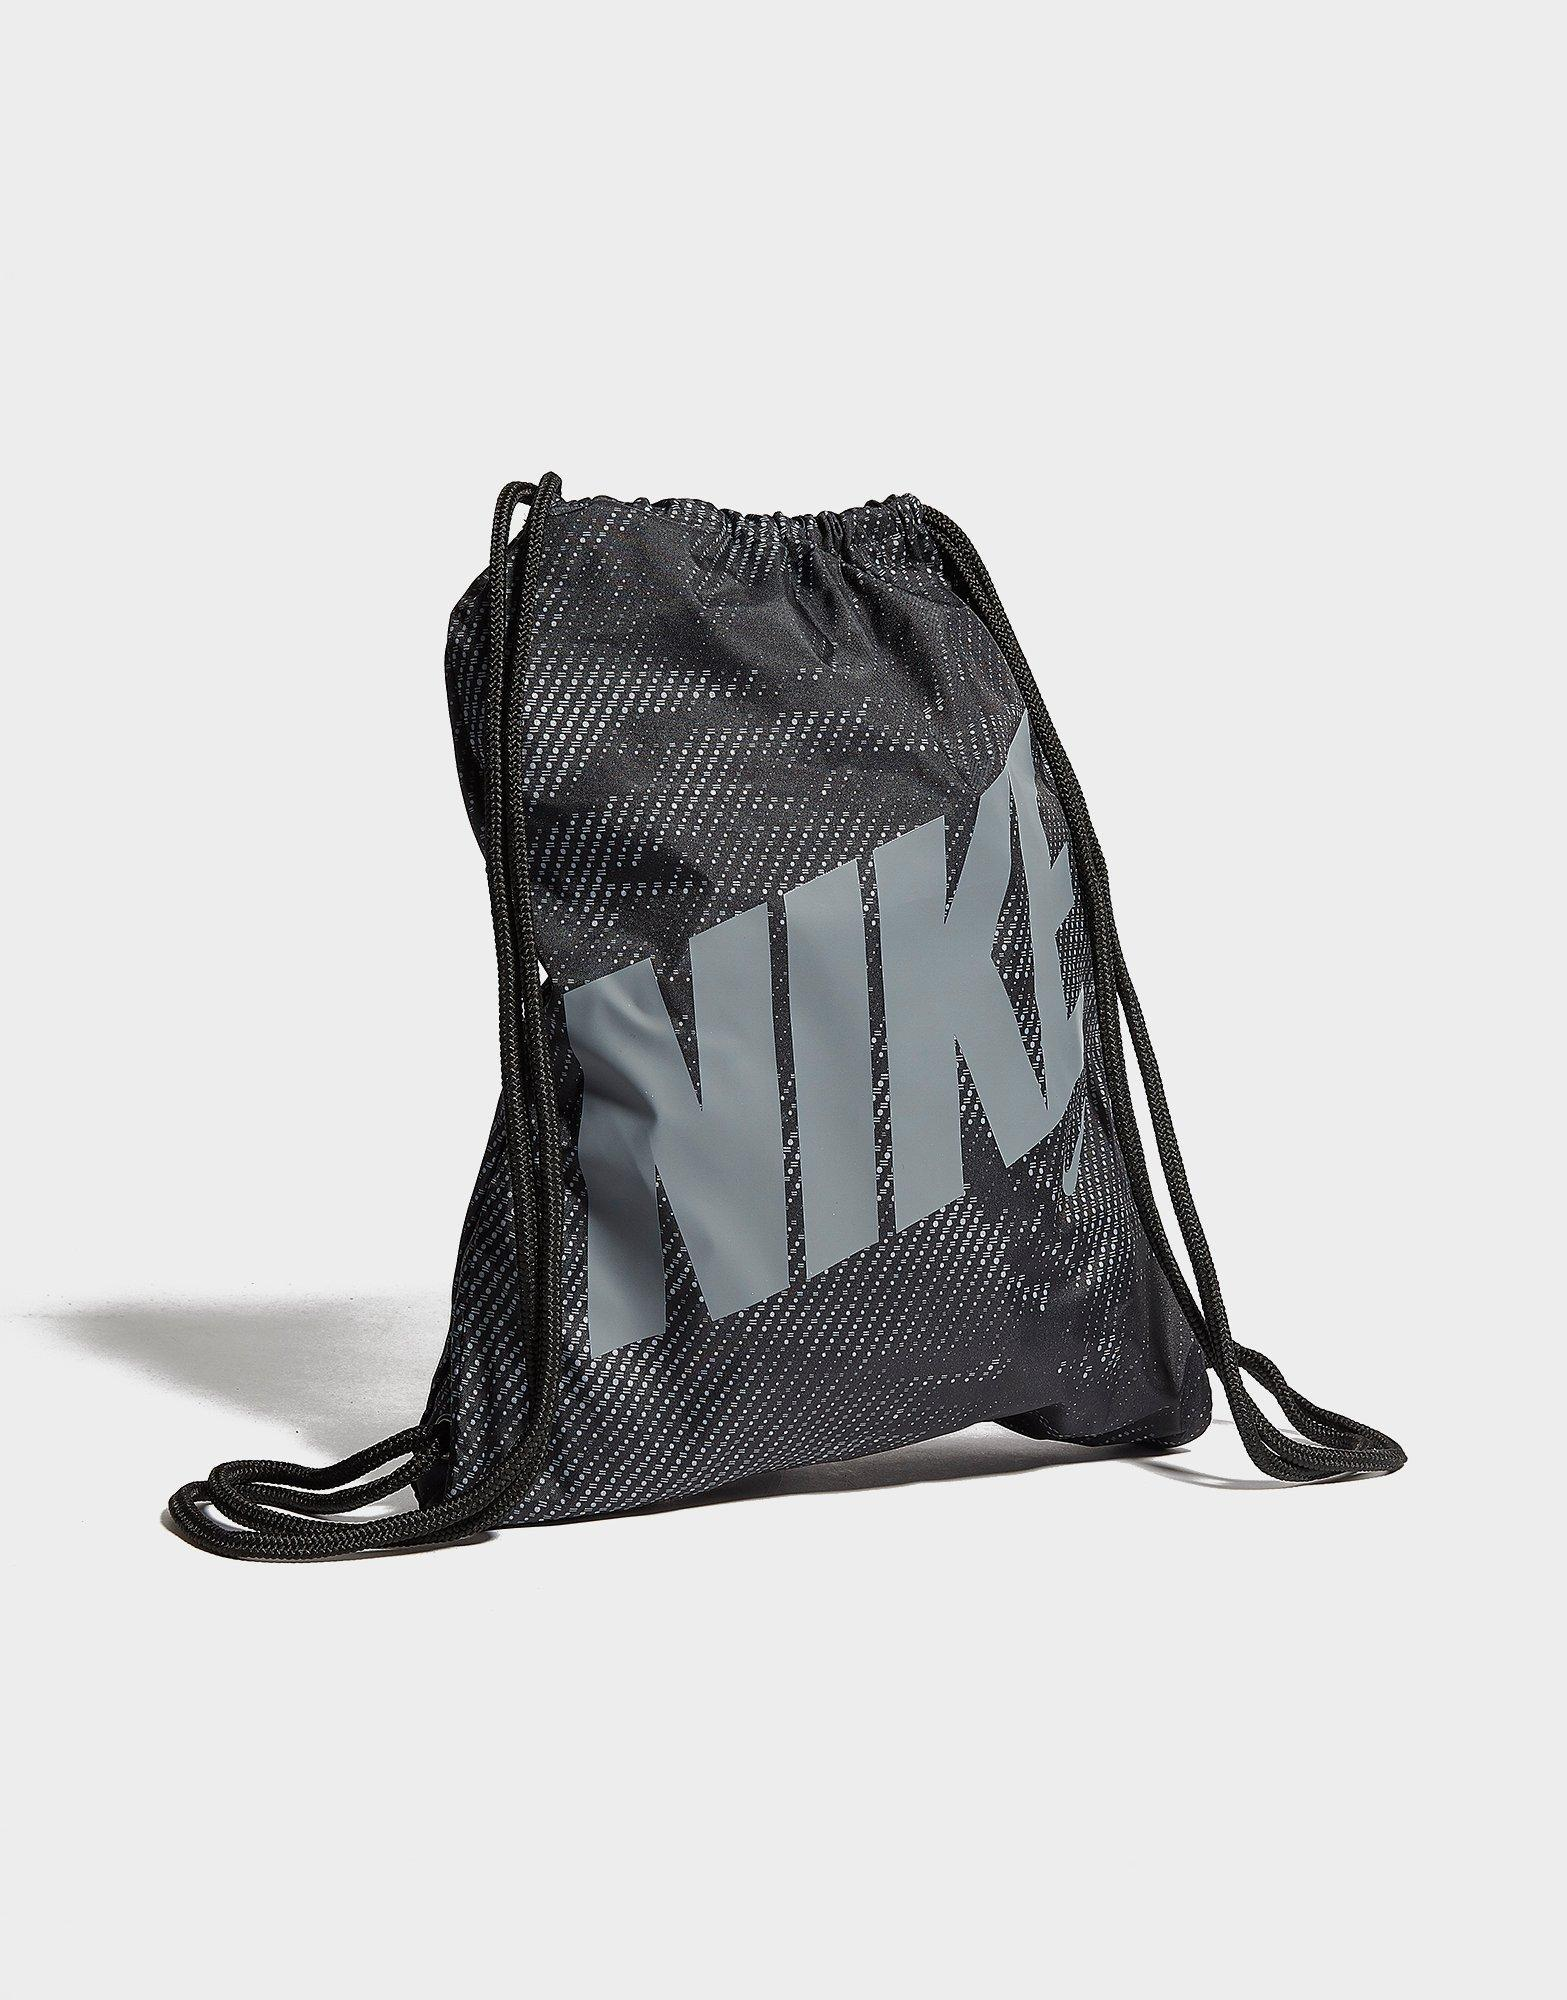 outlet store 35ded f92ad Nike Gfx Gymsack in Black for Men - Lyst